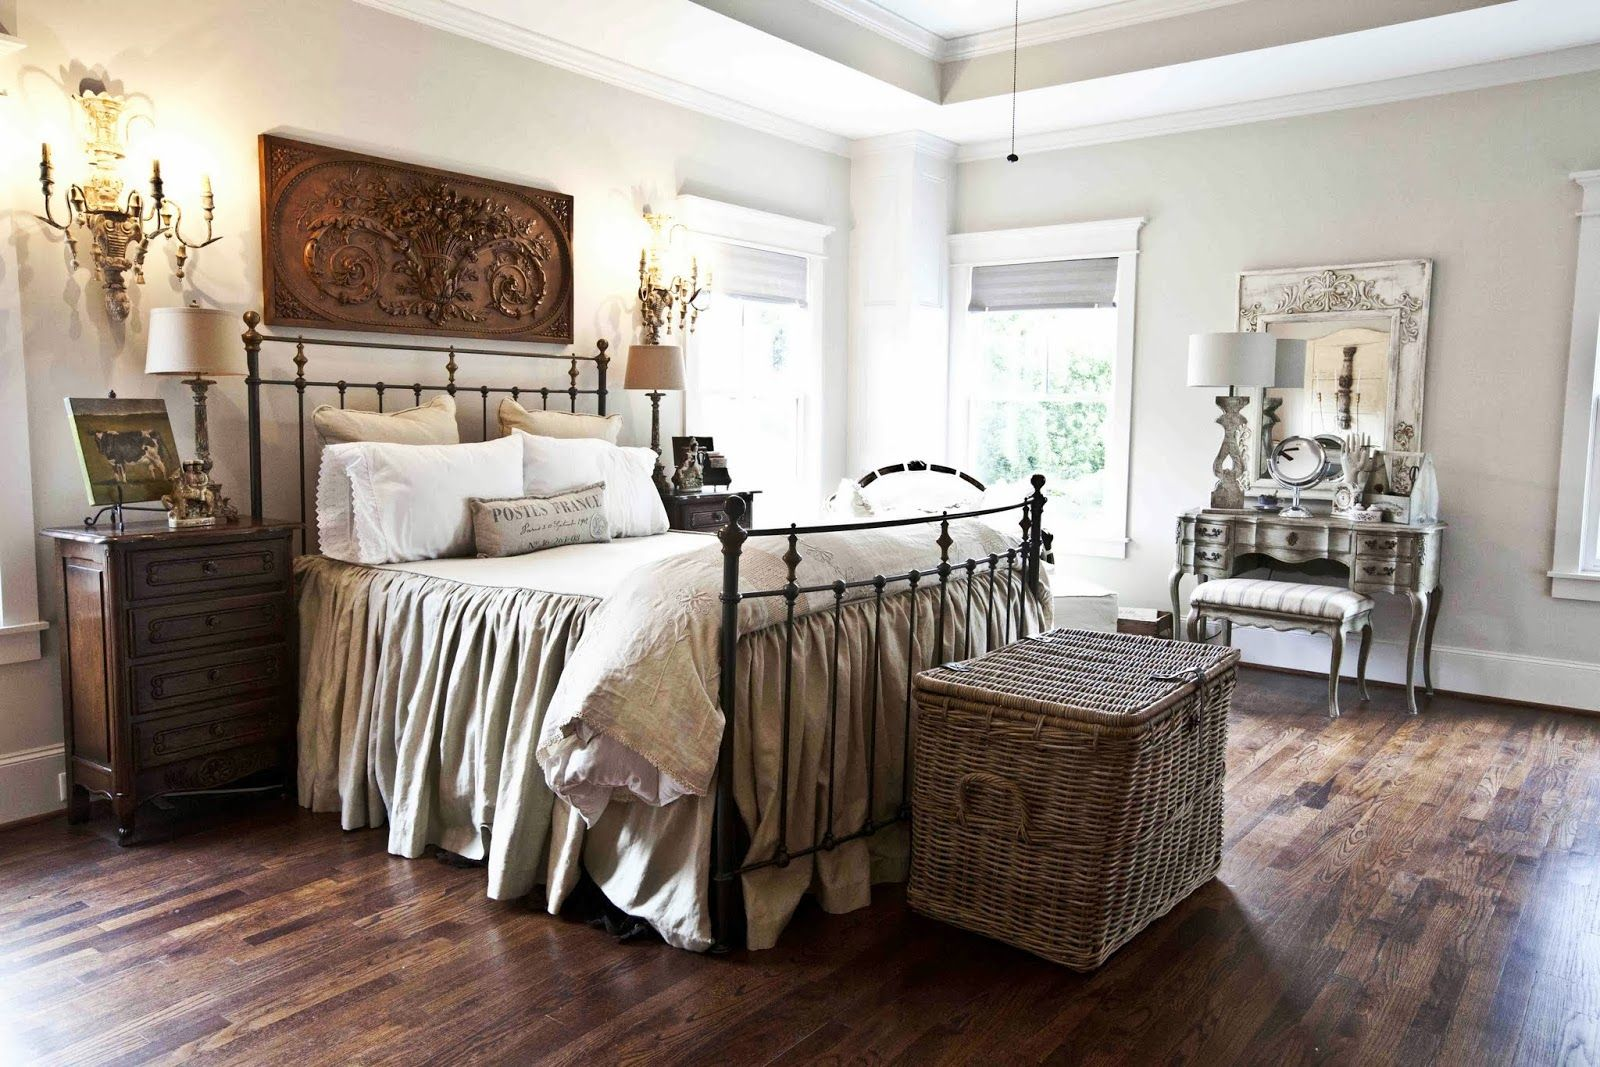 Beautiful tone on tone vintage inspired bedroom, part of the Cedar Hill Farmhouse tour. Stunning!